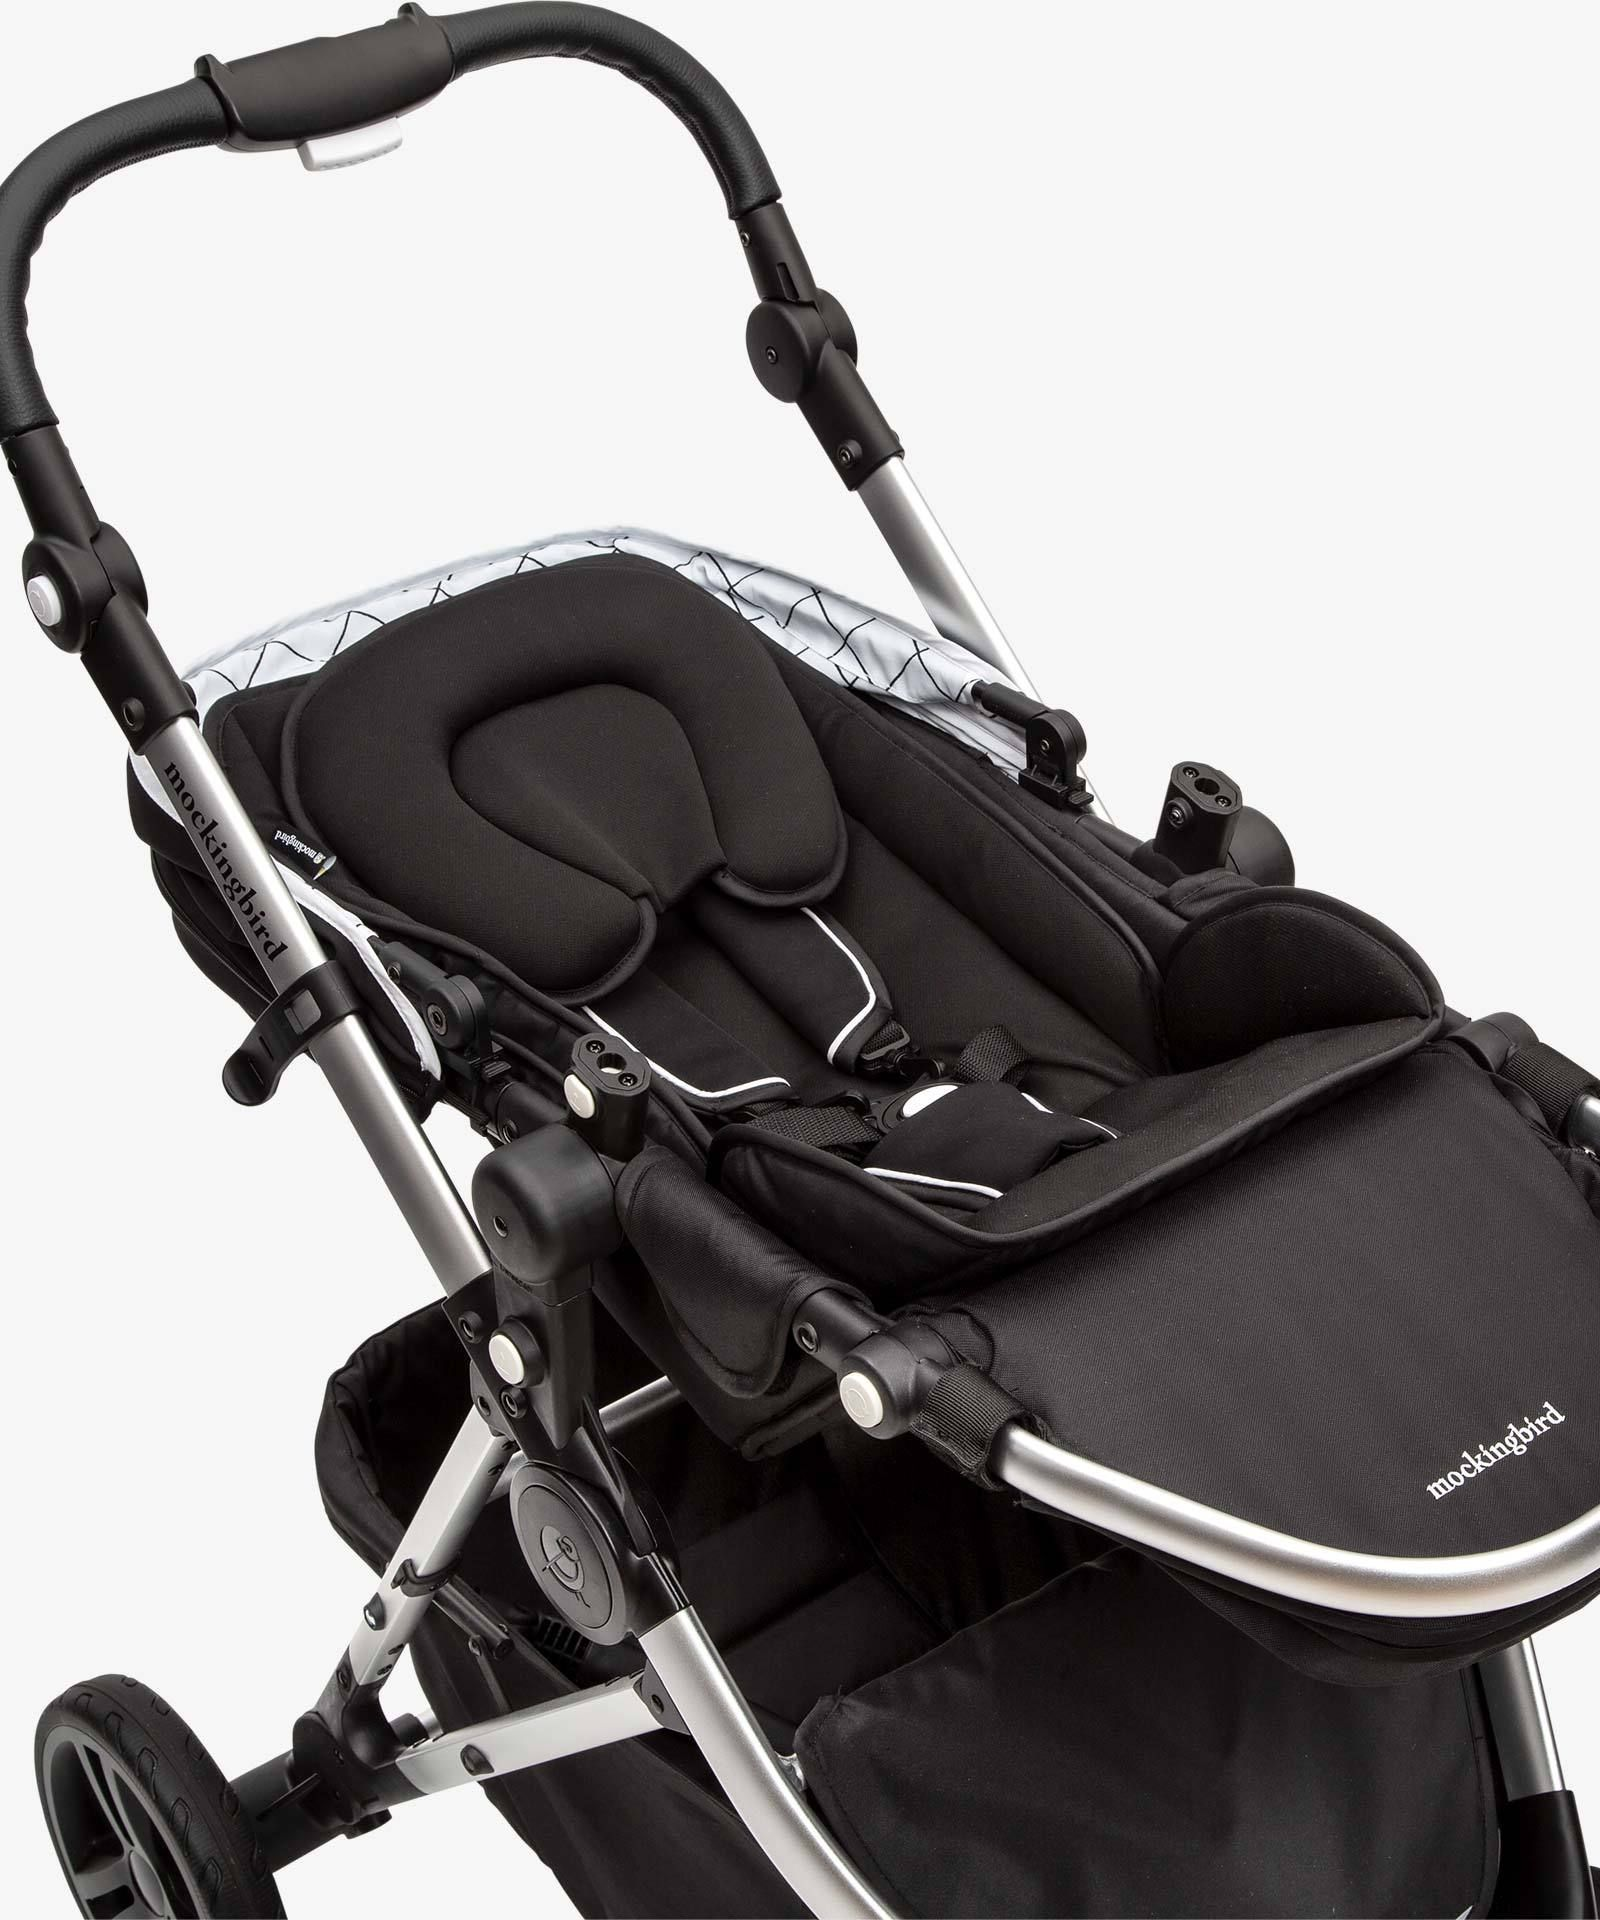 Infant Seat Insert (With images) Baby stroller